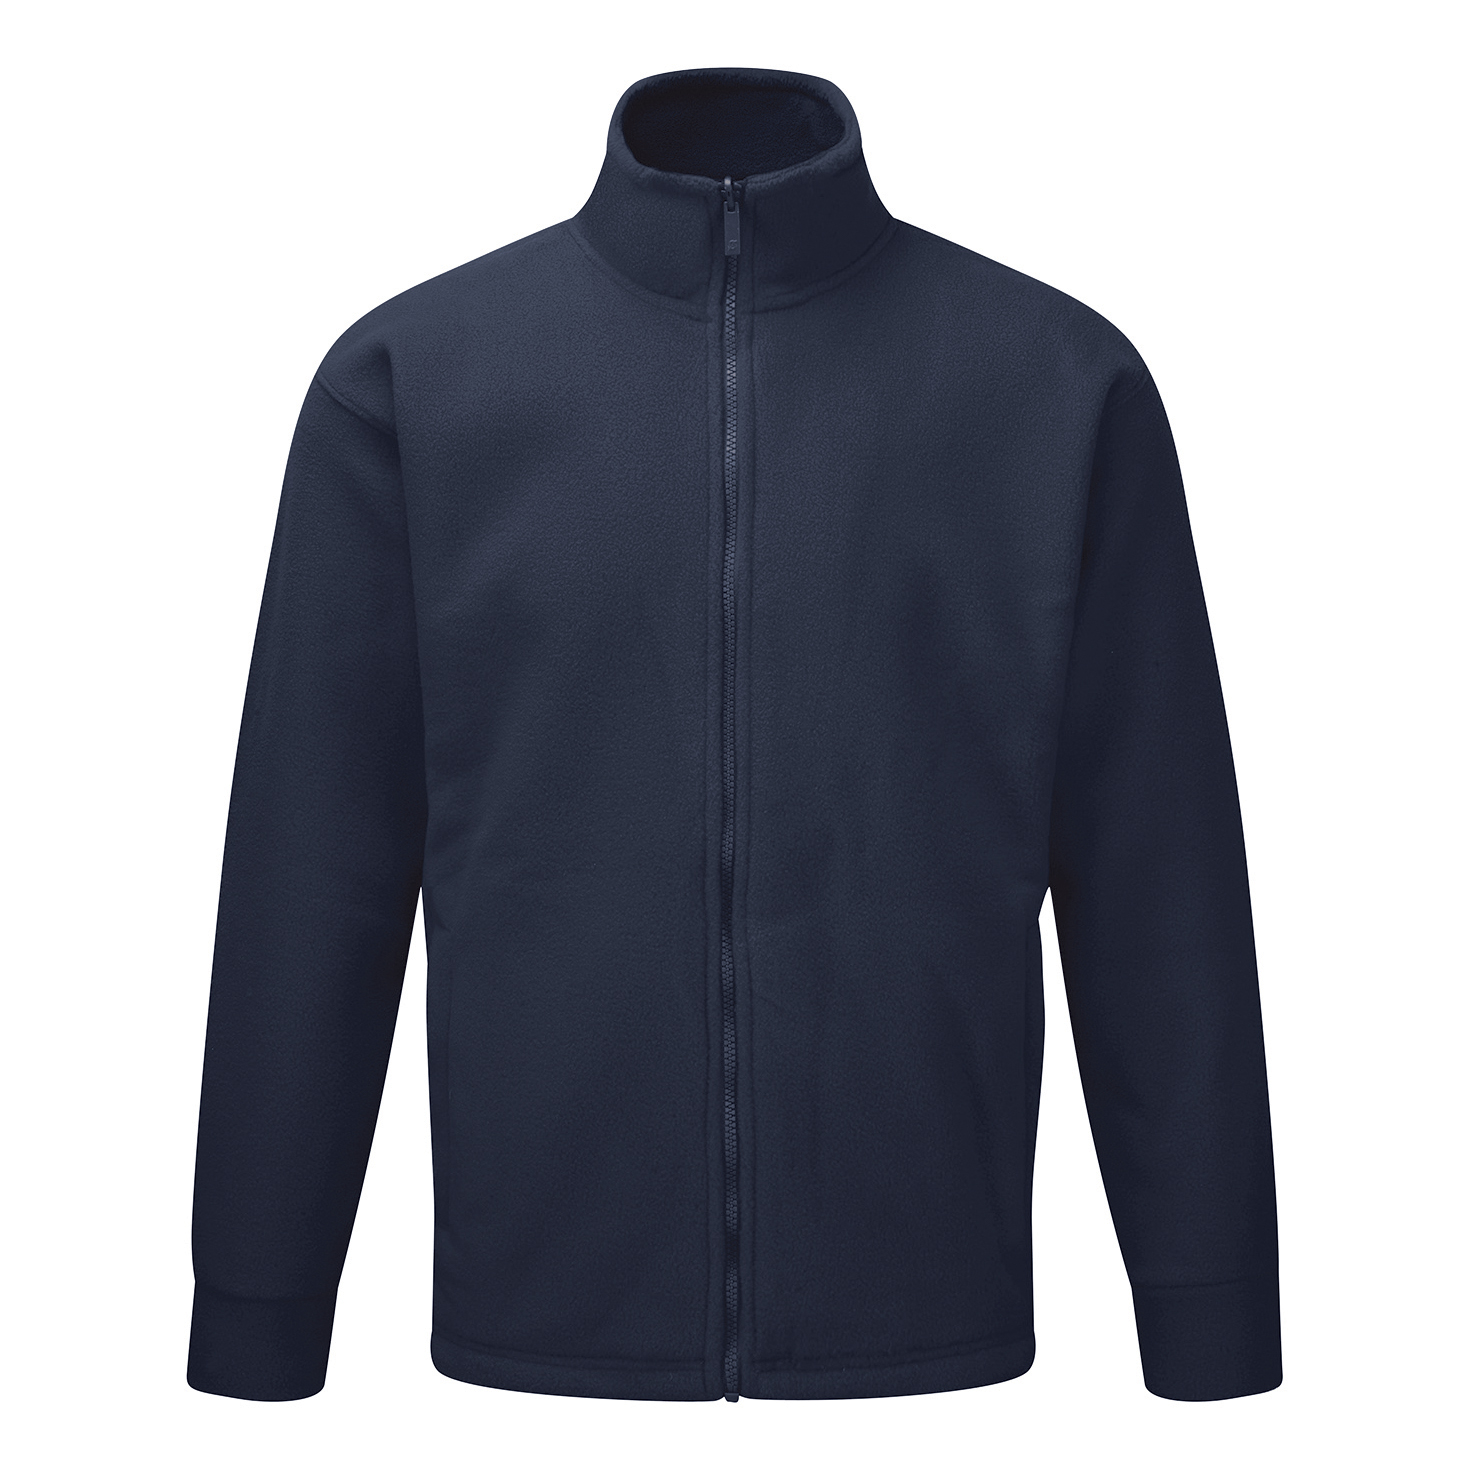 Classic Fleece Jacket Elasticated Cuffs Full Zip Front 3XL Navy Blue Ref FLJNXXXL *1-3 Days Lead Time*